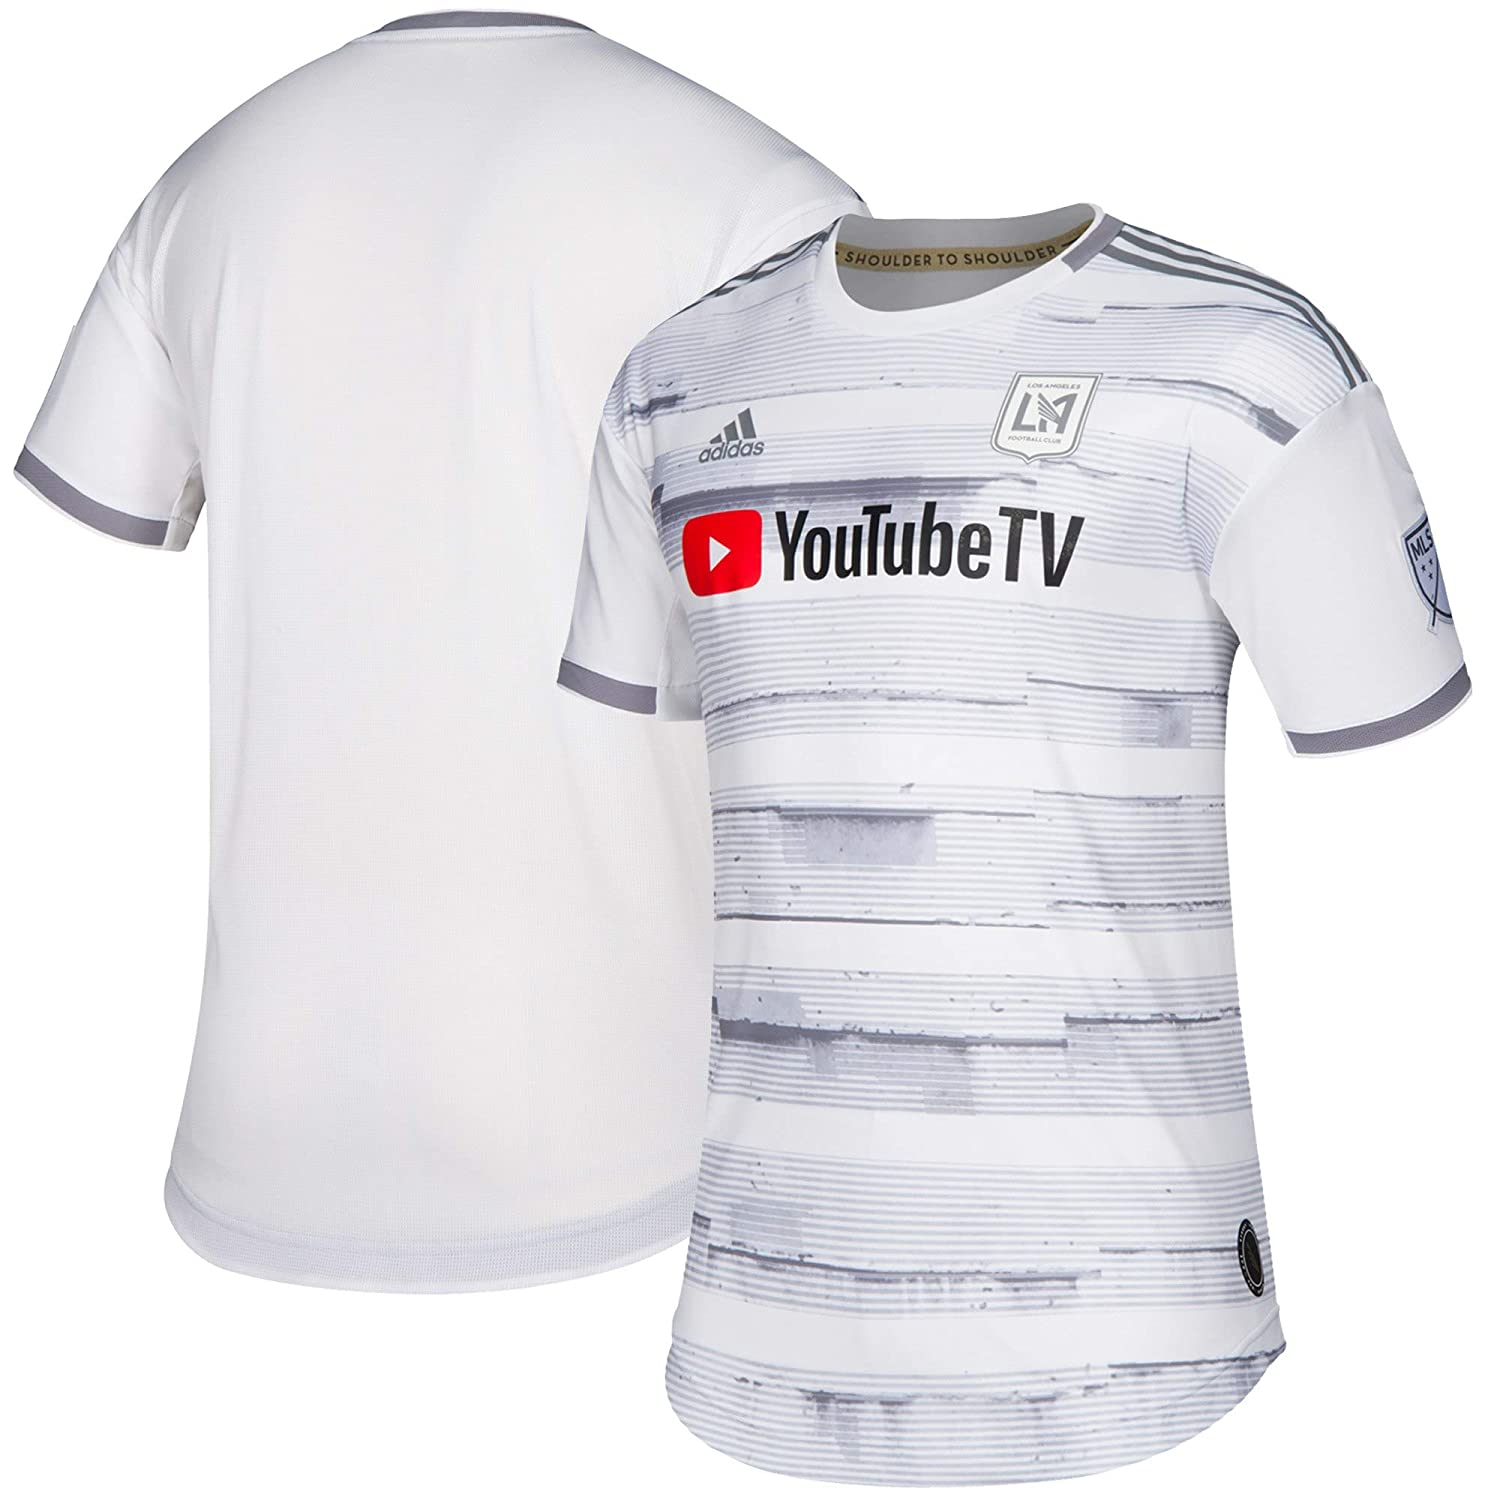 huge selection of 34b92 34365 Amazon.com  adidas 2019 2020 LAFC Los Angeles FC Away Authentic Jersey  Medium White Gray  Clothing